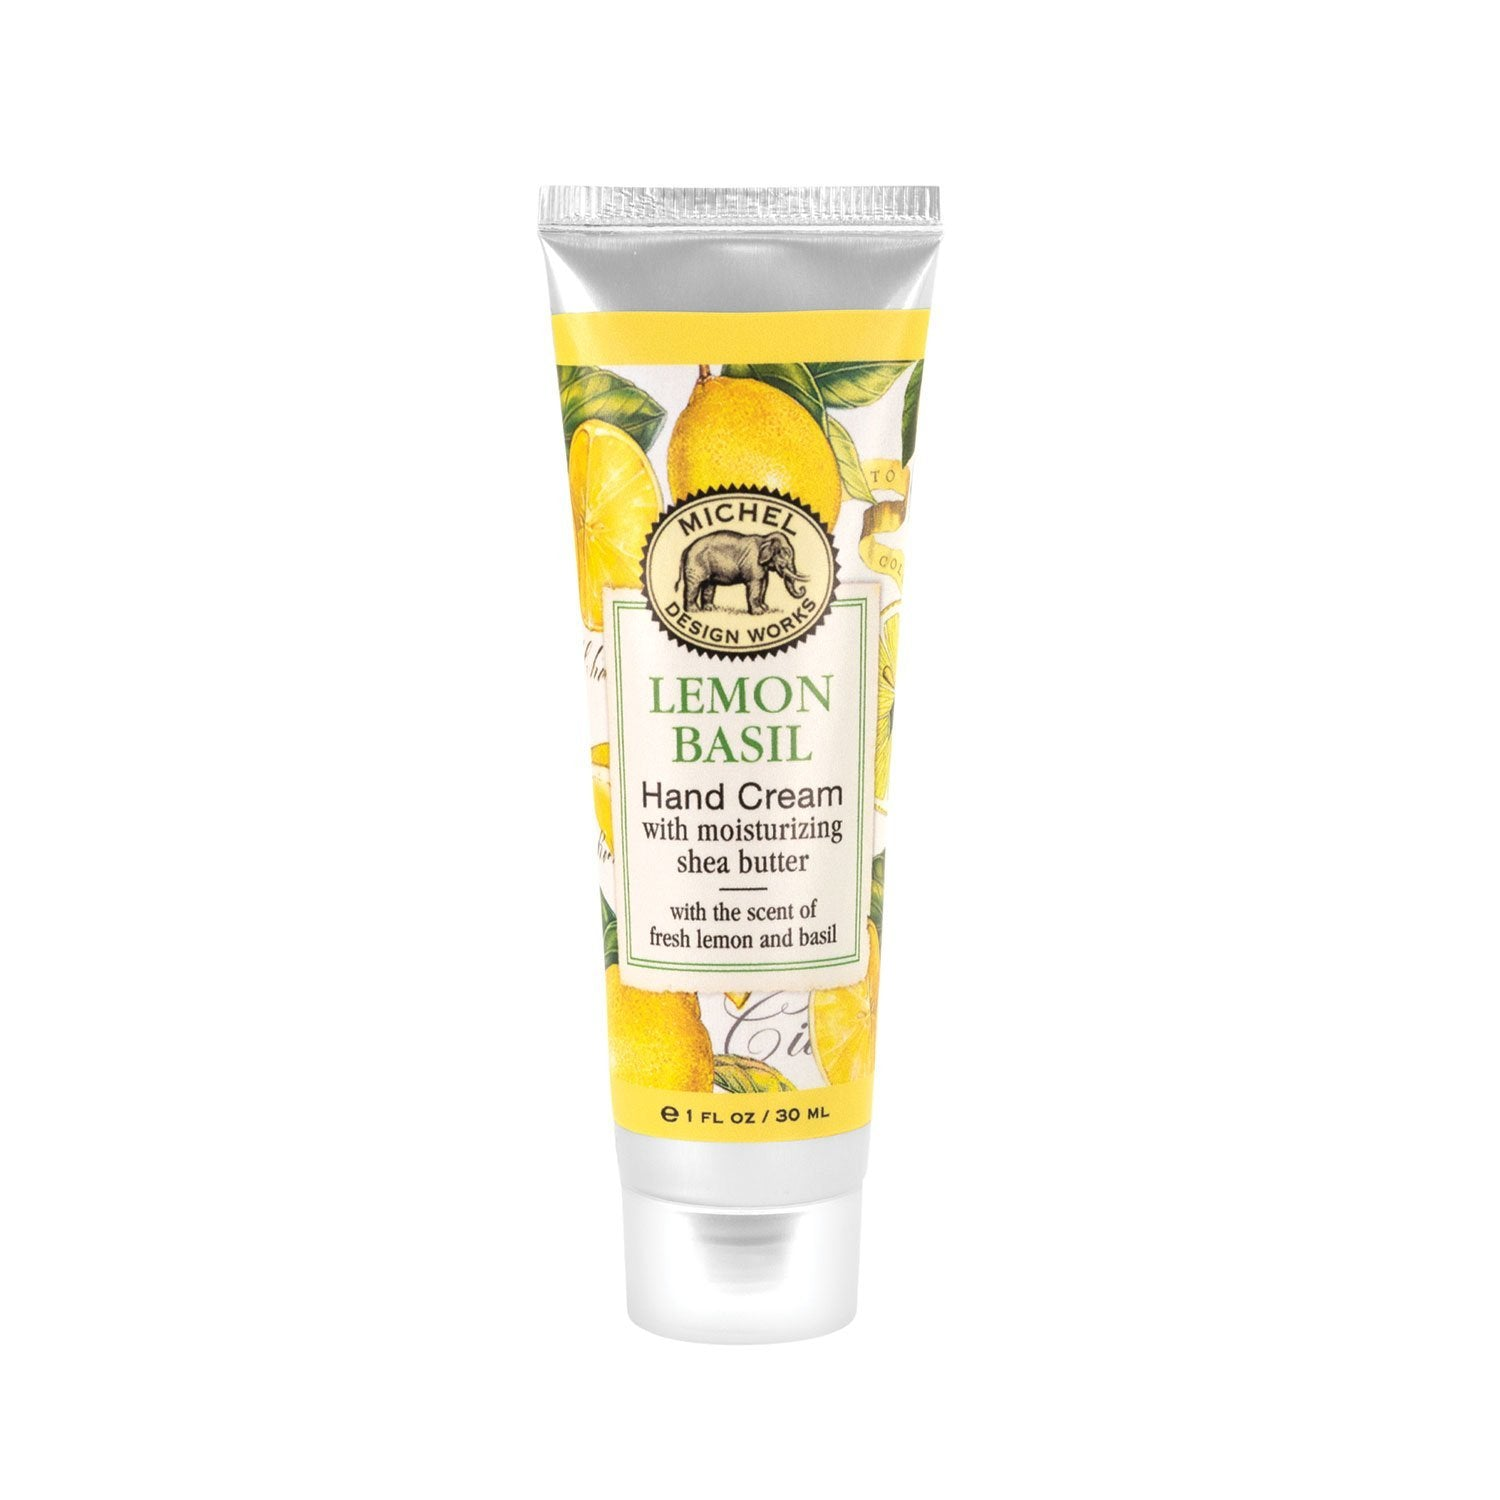 LEMON BASIL HAND CREAM HCS05 - Molly's! A Chic and Unique Boutique